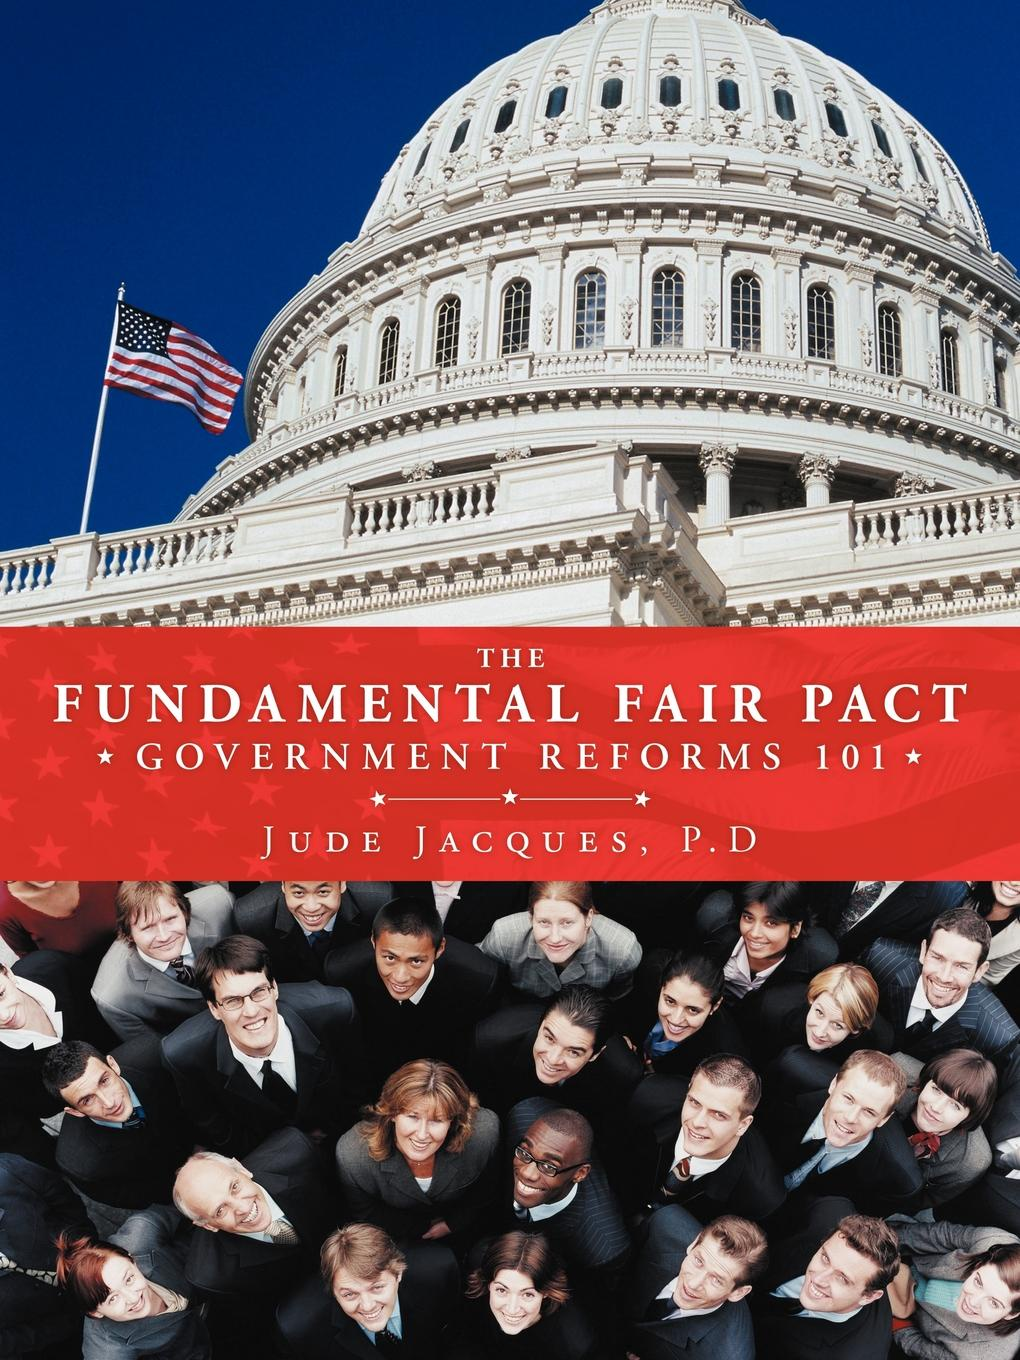 Jude Jacques P.D THE FUNDAMENTAL FAIR PACT. GOVERNMENT REFORMS 101 blood pact